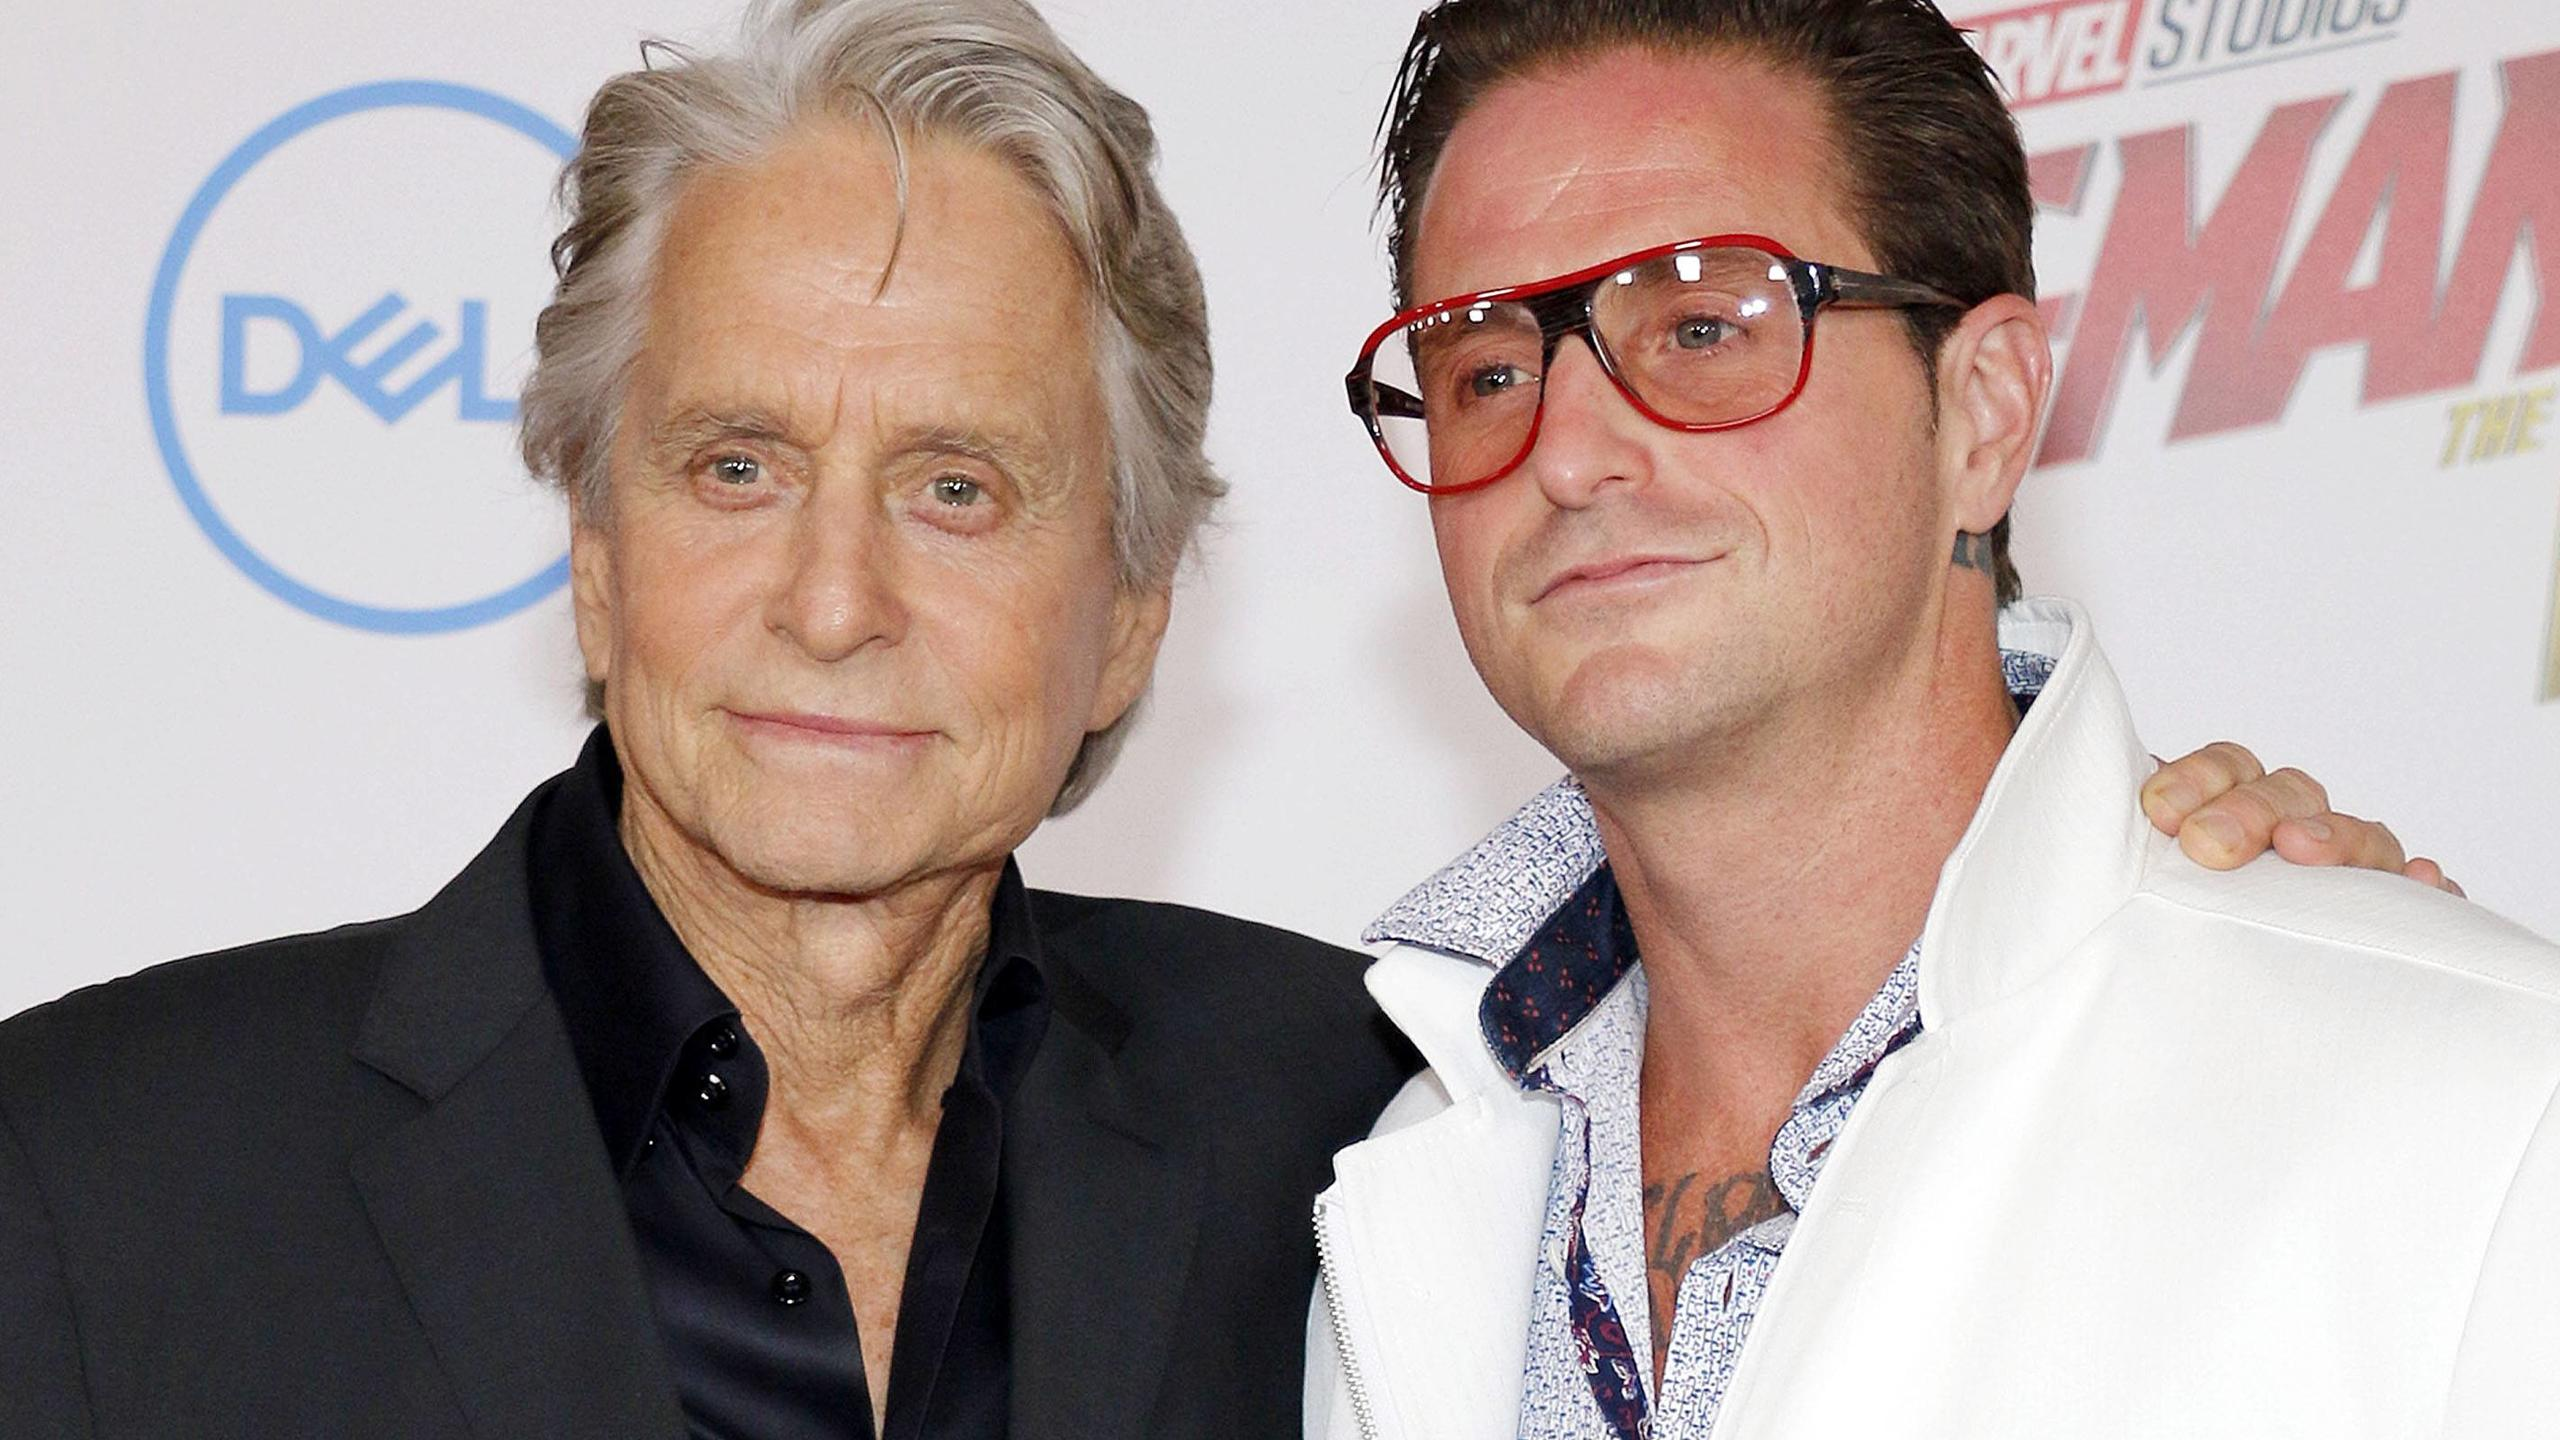 Michael Douglas und sein Sohn Cameron Douglas bei der Ant-Man and the Wasp Filmpremiere am 25.06.2018 in Hollywood, Los Angeles Ant-Man And The Wasp Filmpremiere in Hollywood, Los Angeles, 2018 *** Michael Douglas and his son Cameron Douglas at the A